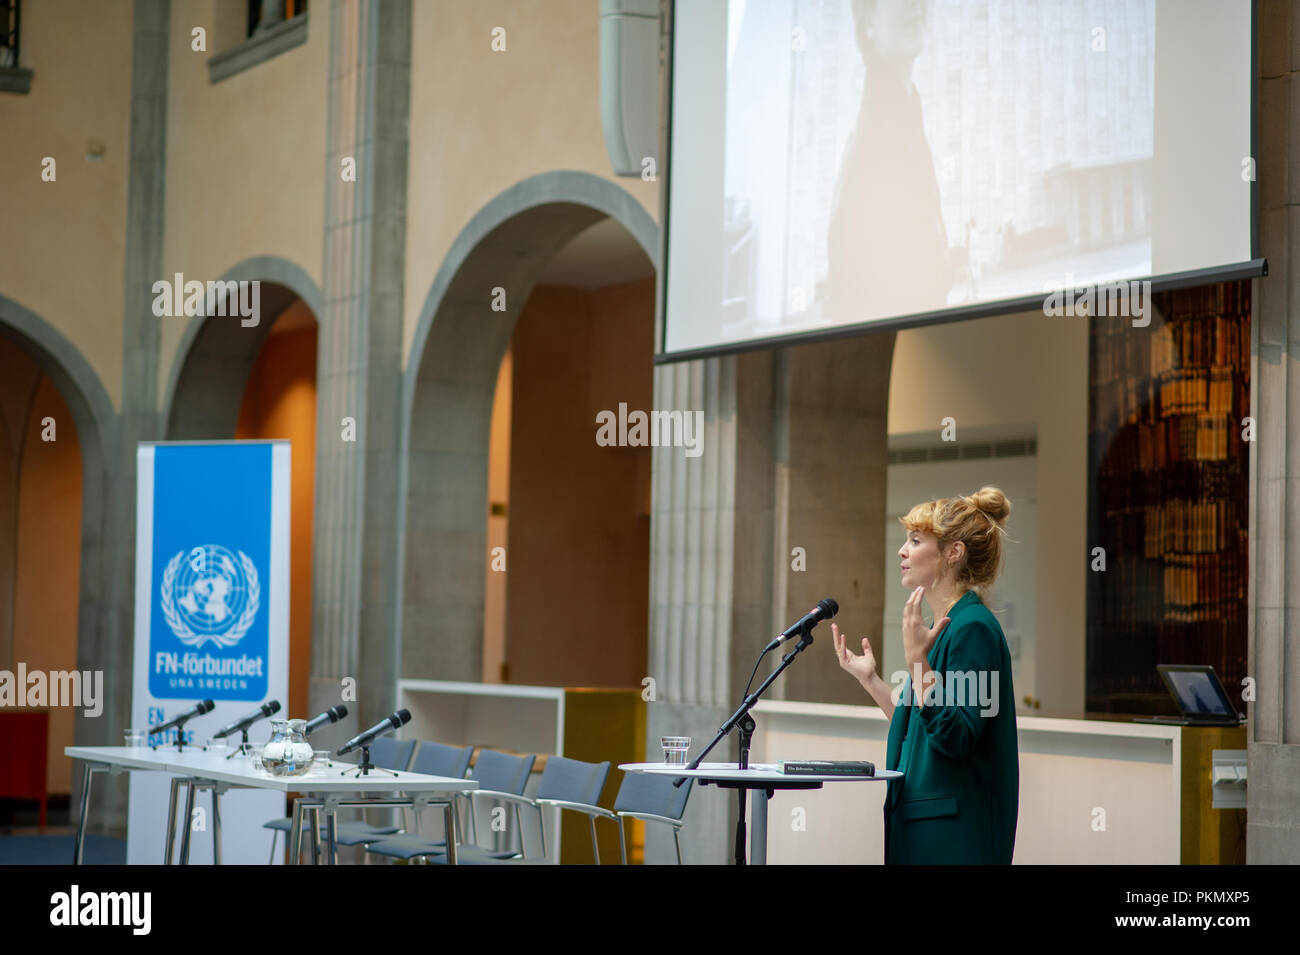 "Stockholm, Sweden, September 14, 2018. Seminar about Agda Rössel (1910-2001) Sweden's and the world's first female UN ambassador. Presentation of the book ""Her Excellency Agda Rössel: from Lineman cottage to the UN Scraper ""by author Elin Jäderström. The author Elin Jäderström.The seminar is held at the Ministry of Foreign Affairs.  Credit: Barbro Bergfeldt/Alamy Live News Stock Photo"